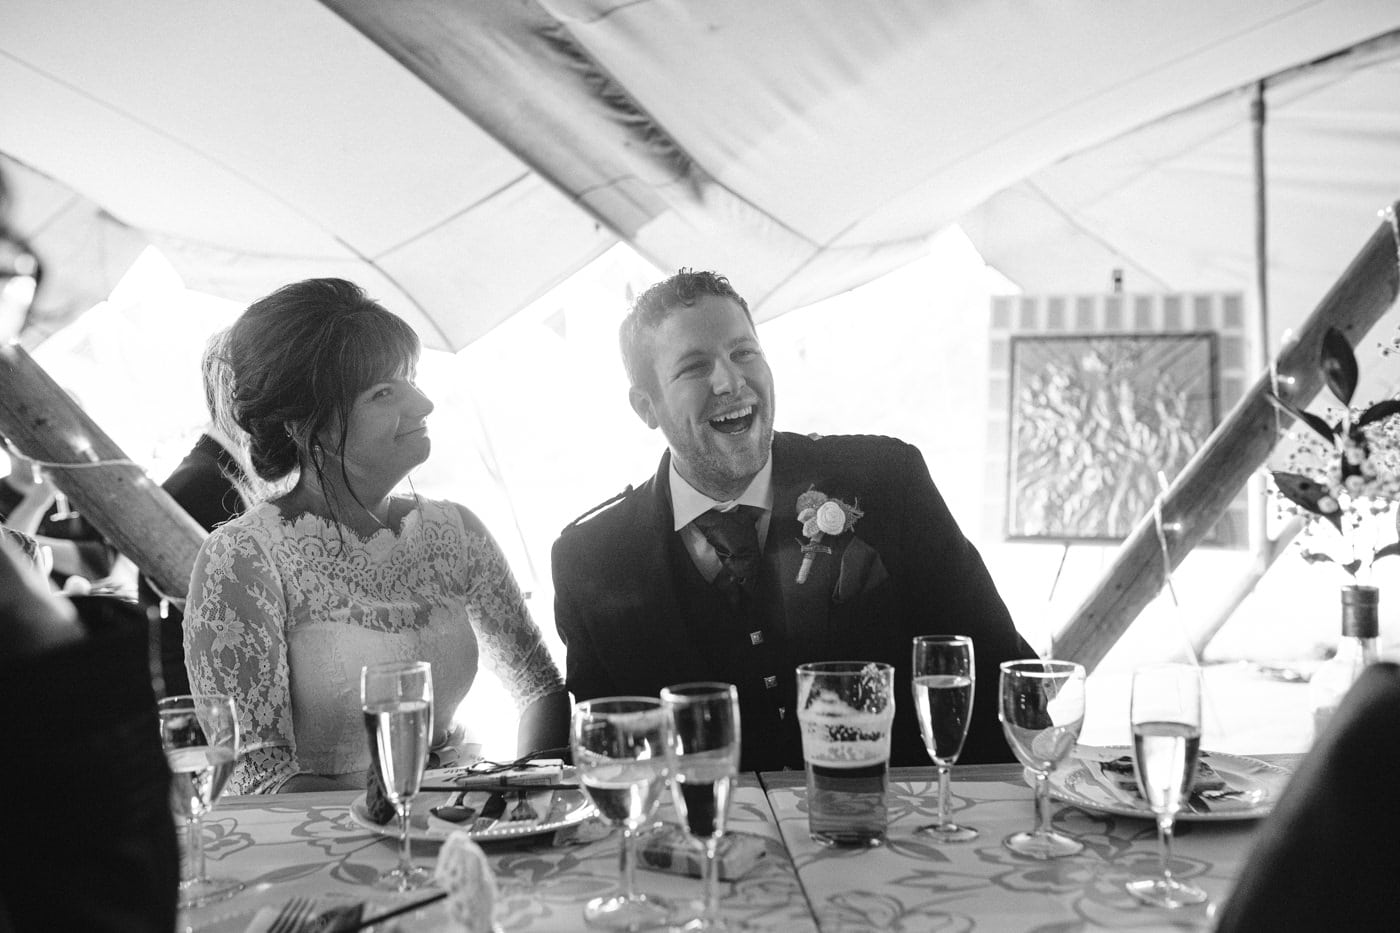 Bride and Groom at Tipi Tent Table Filled with Wine and Food